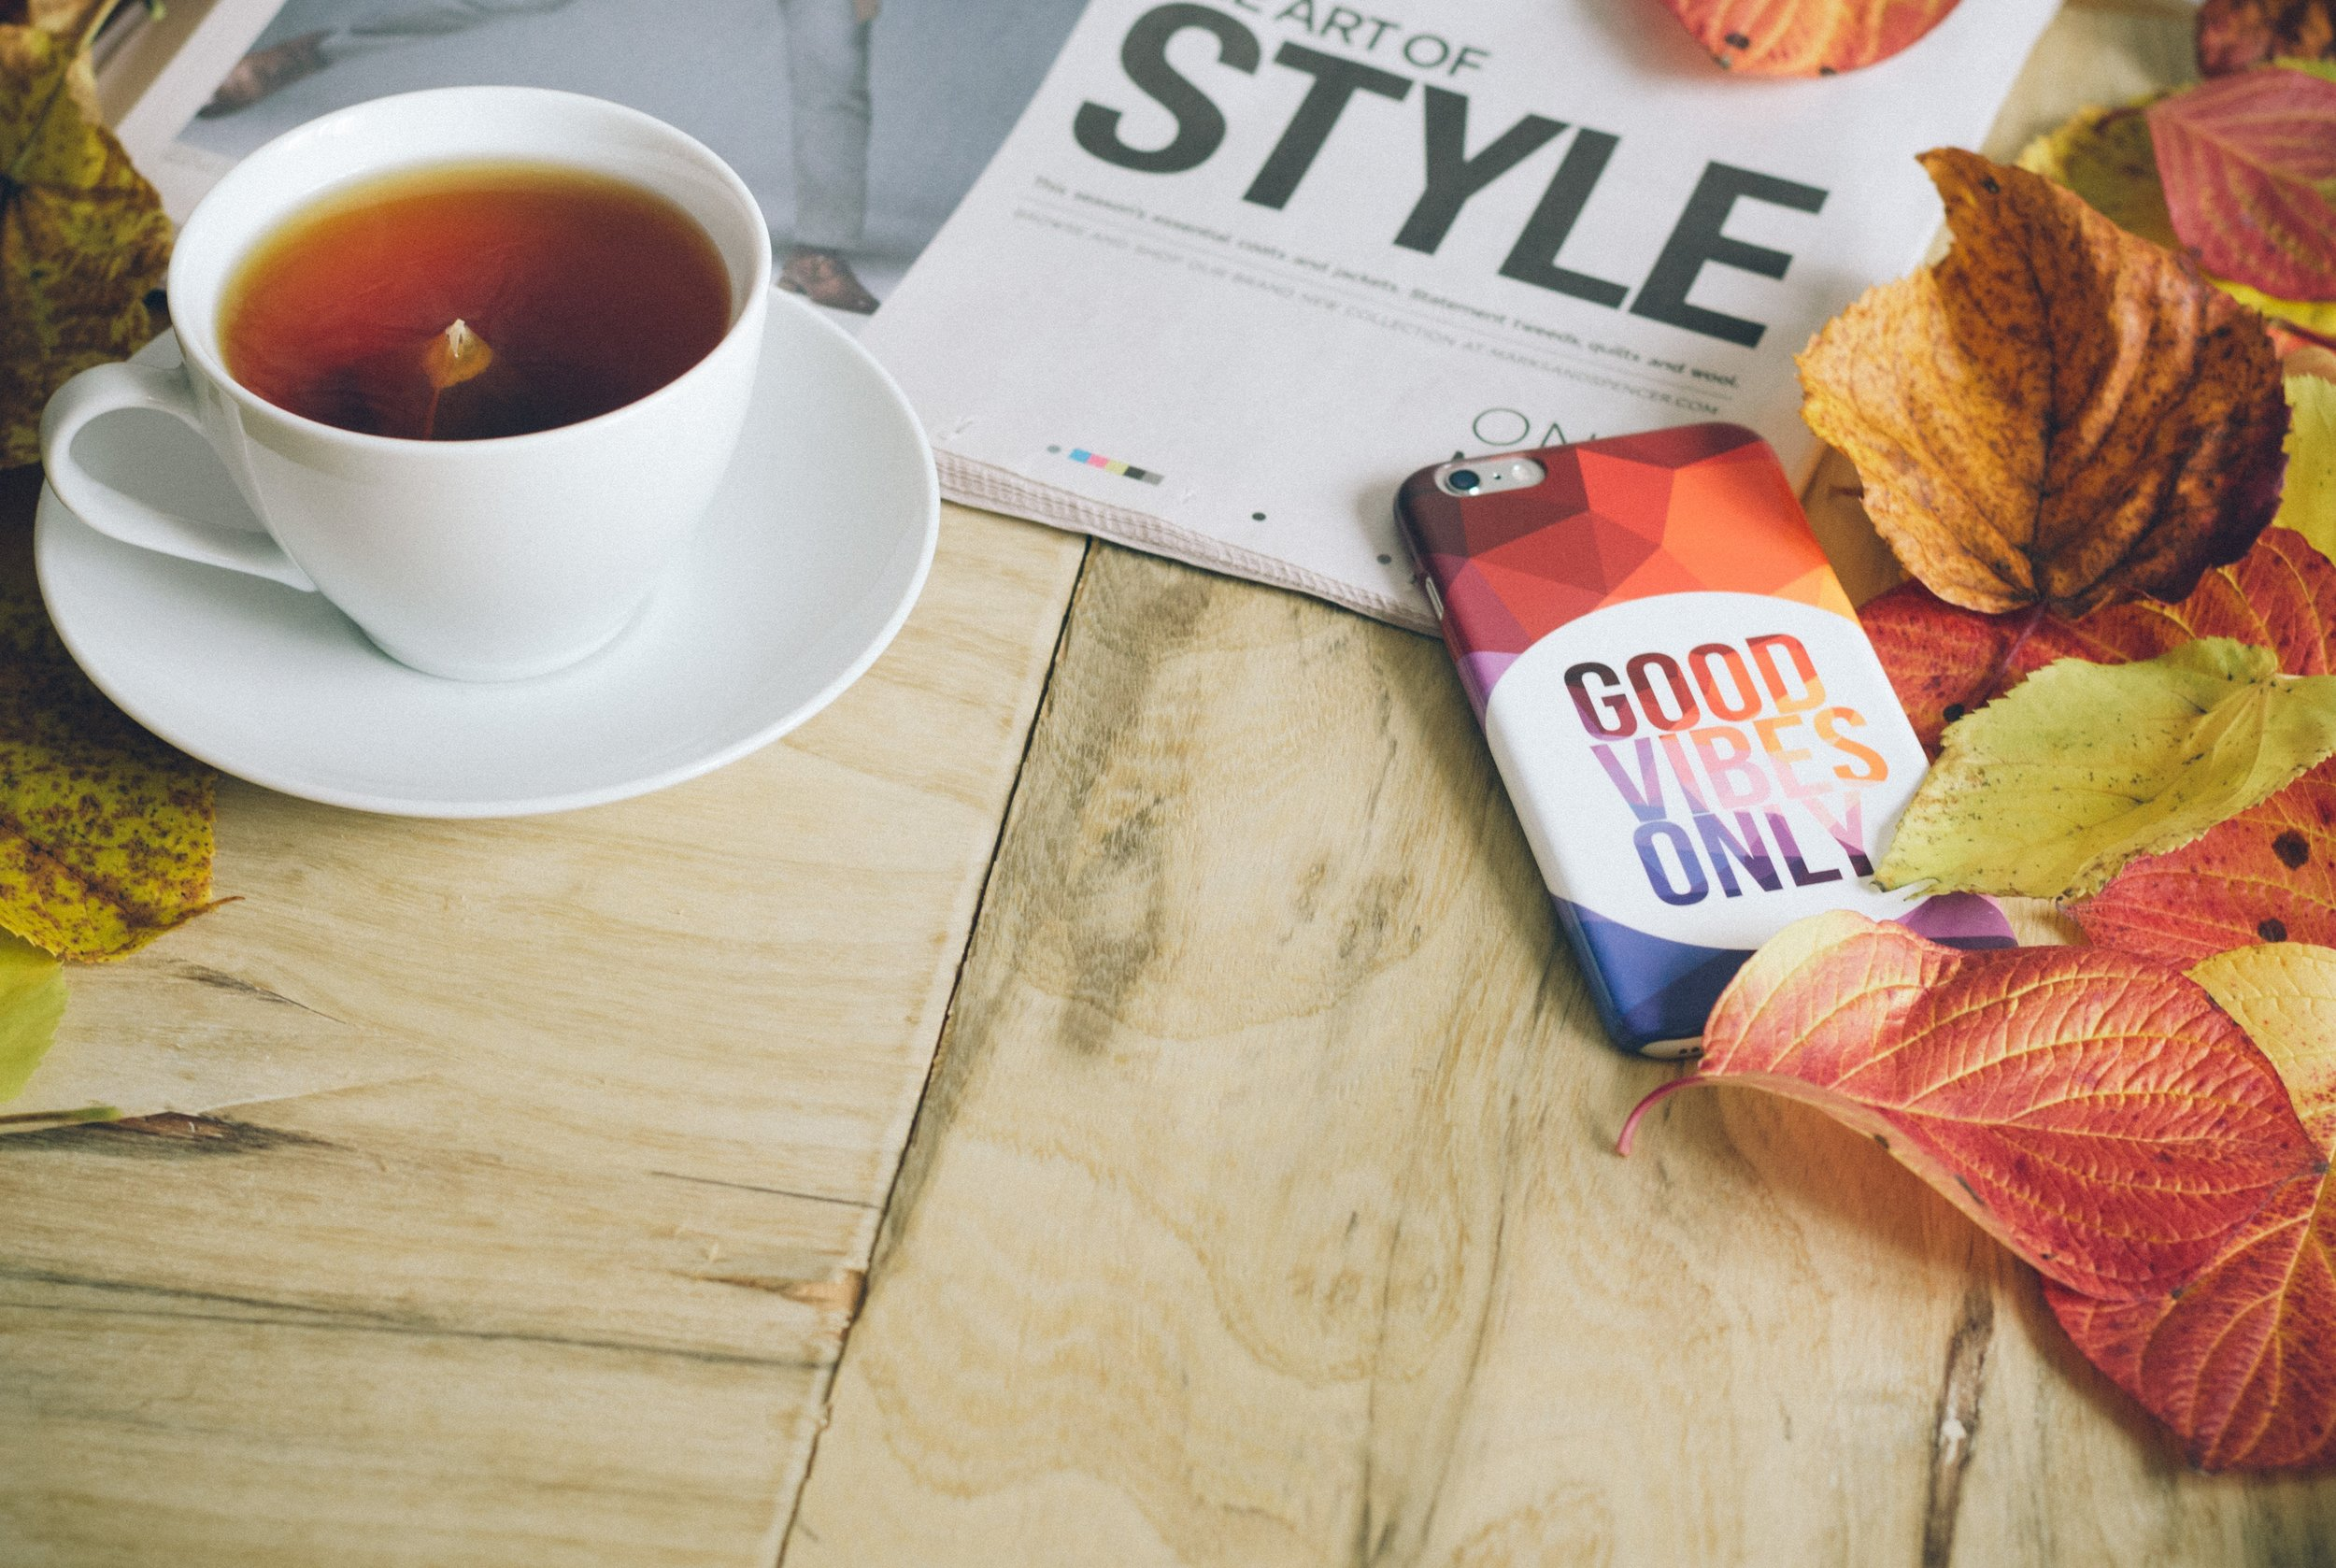 Changing the style of your brand could be the way to rebrand successfully